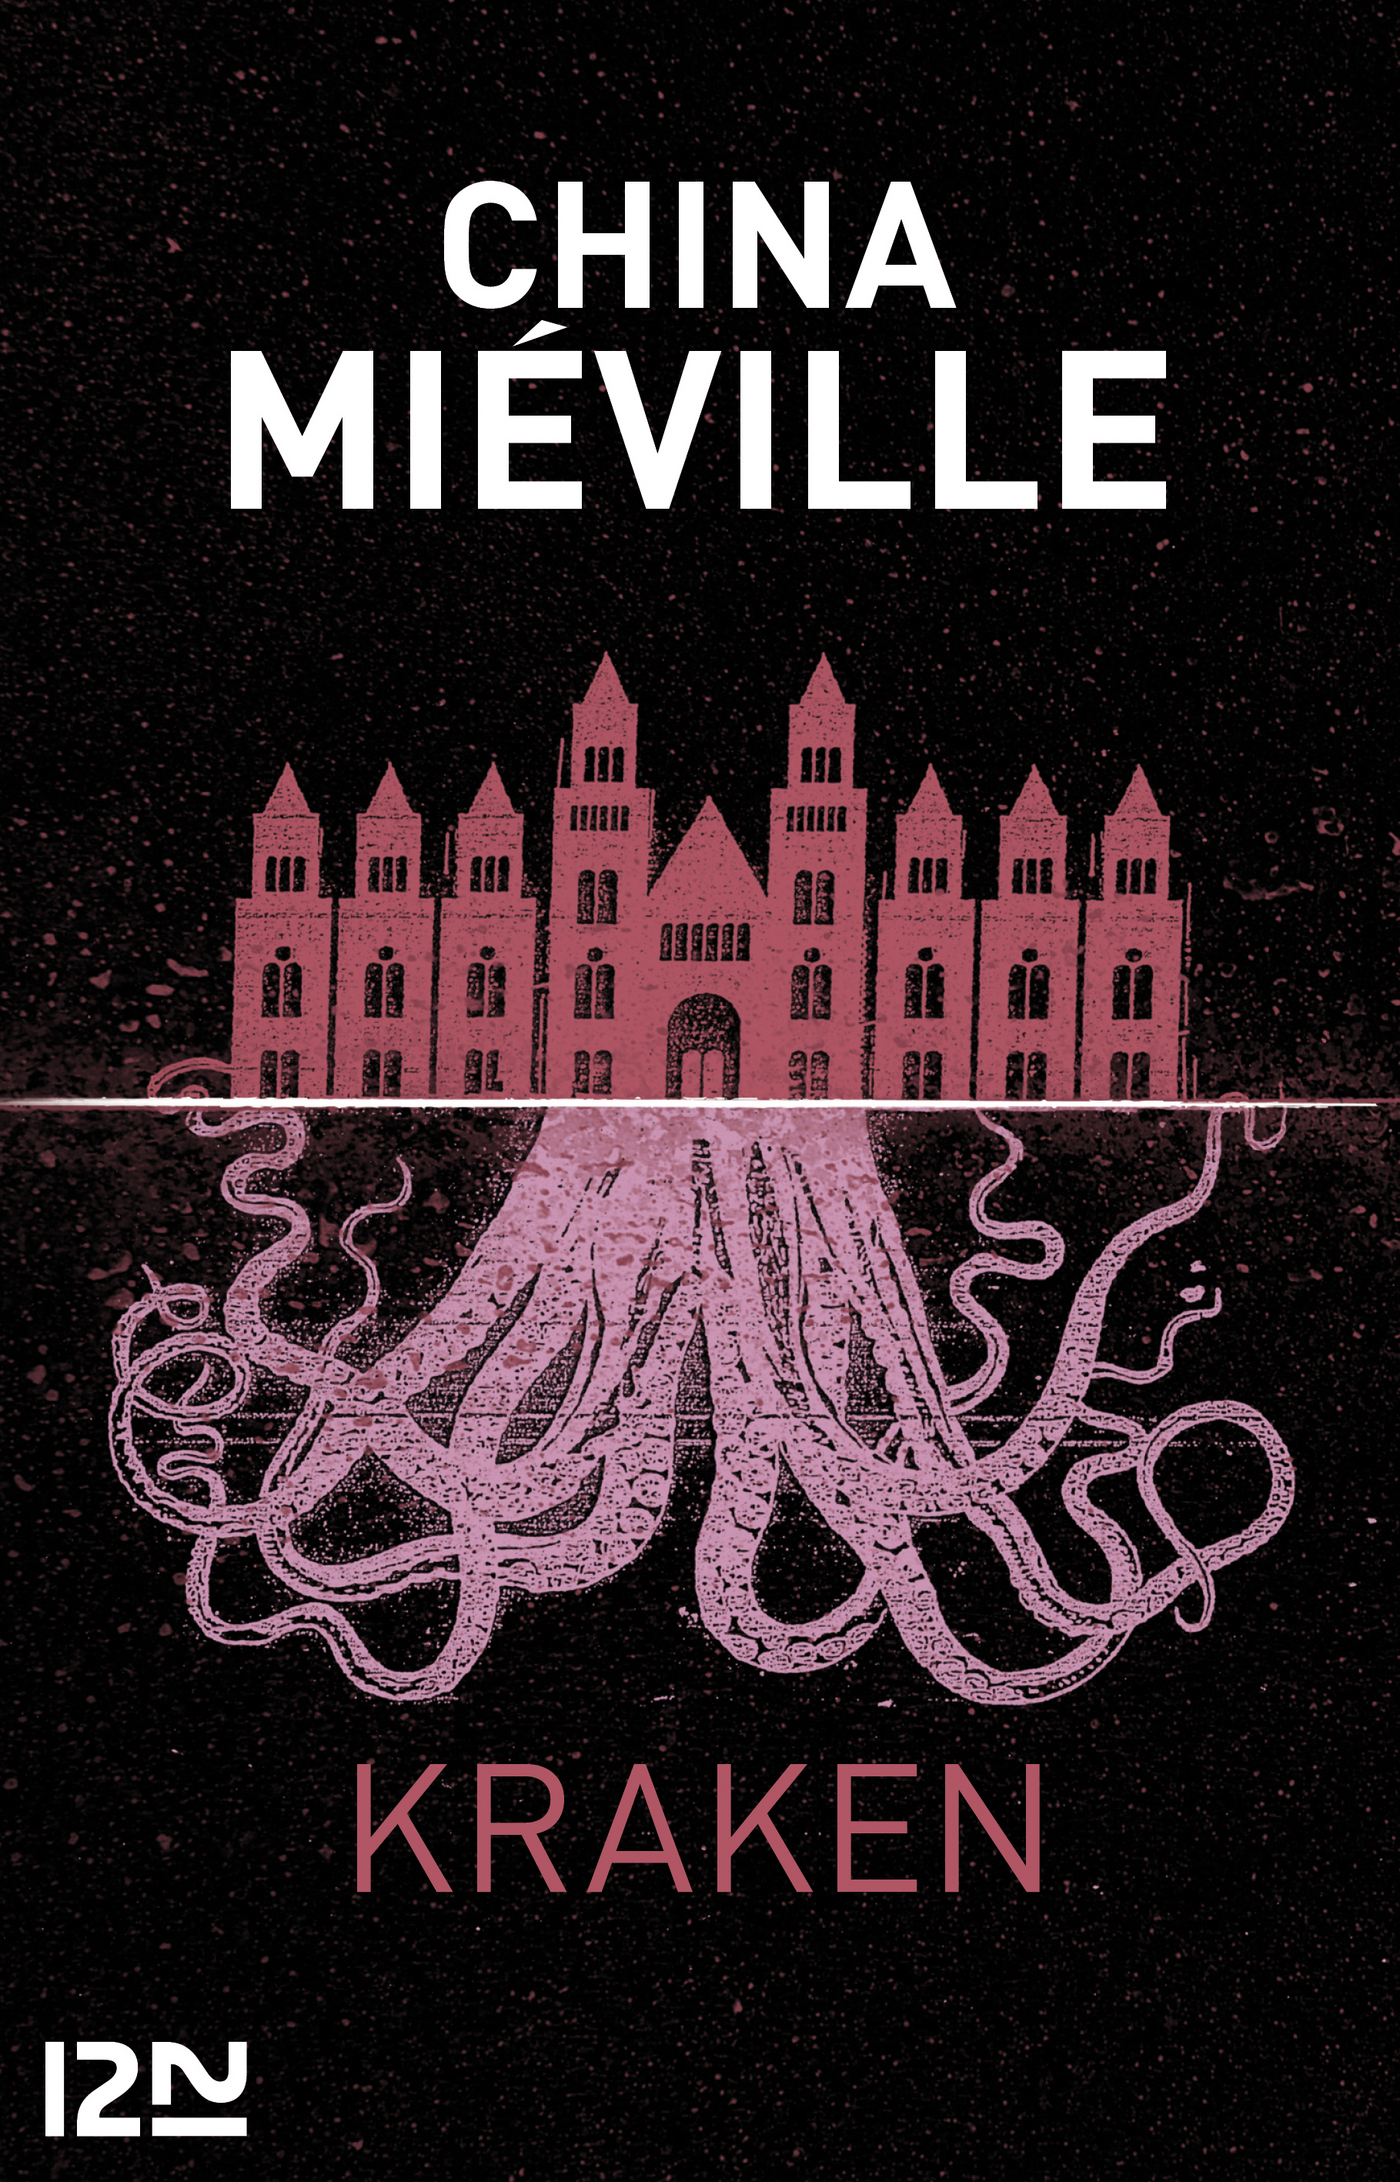 Kraken | MIEVILLE, China